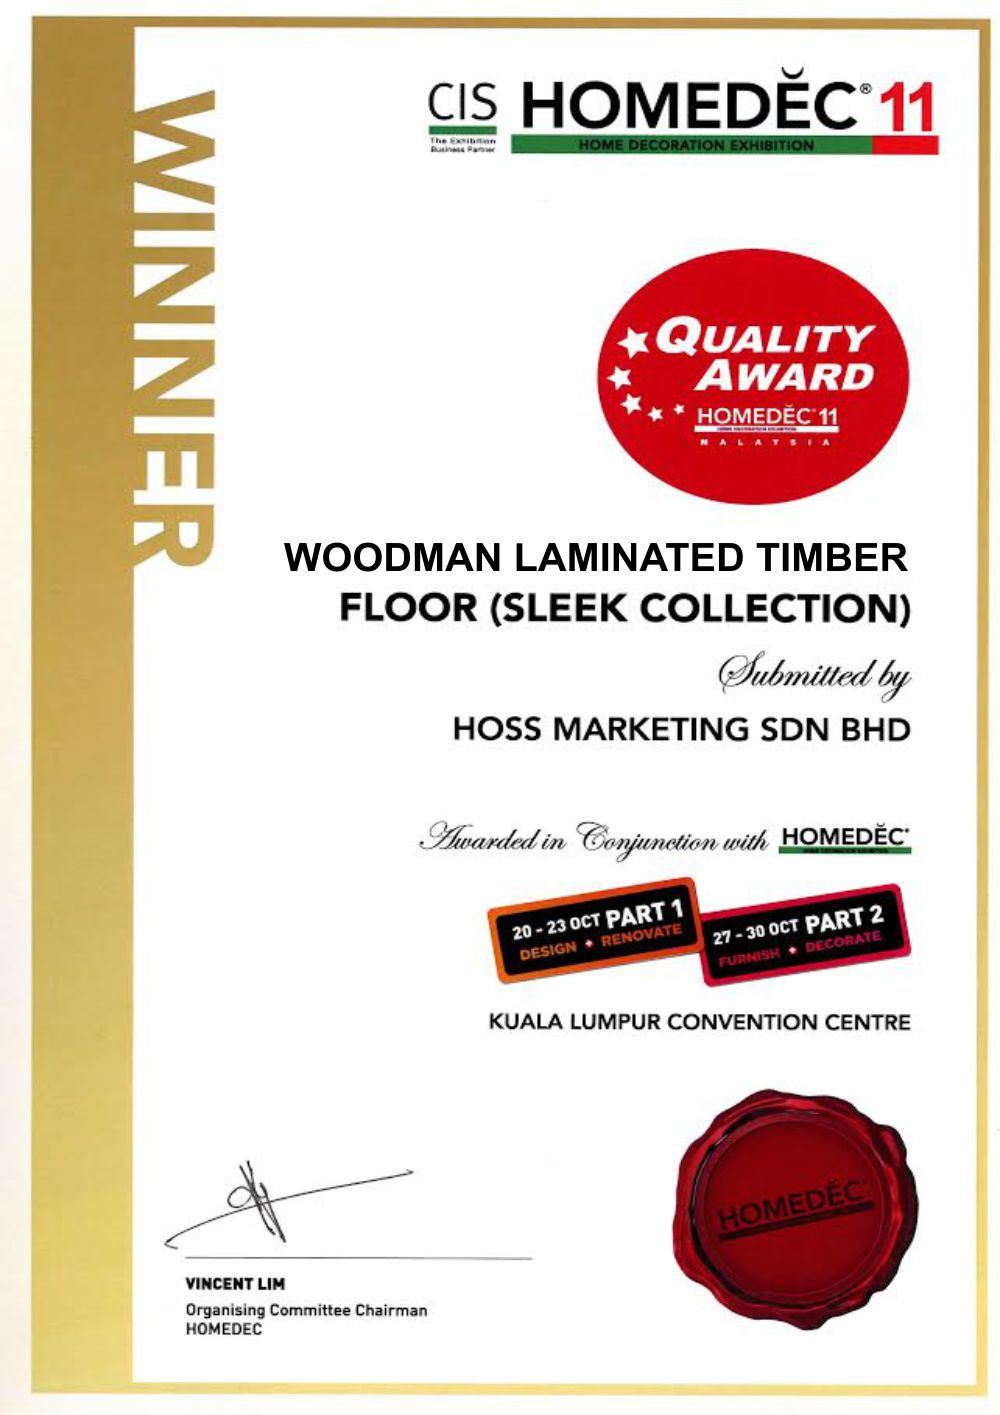 Homedec'11 Quality Award WOODMAN Laminated